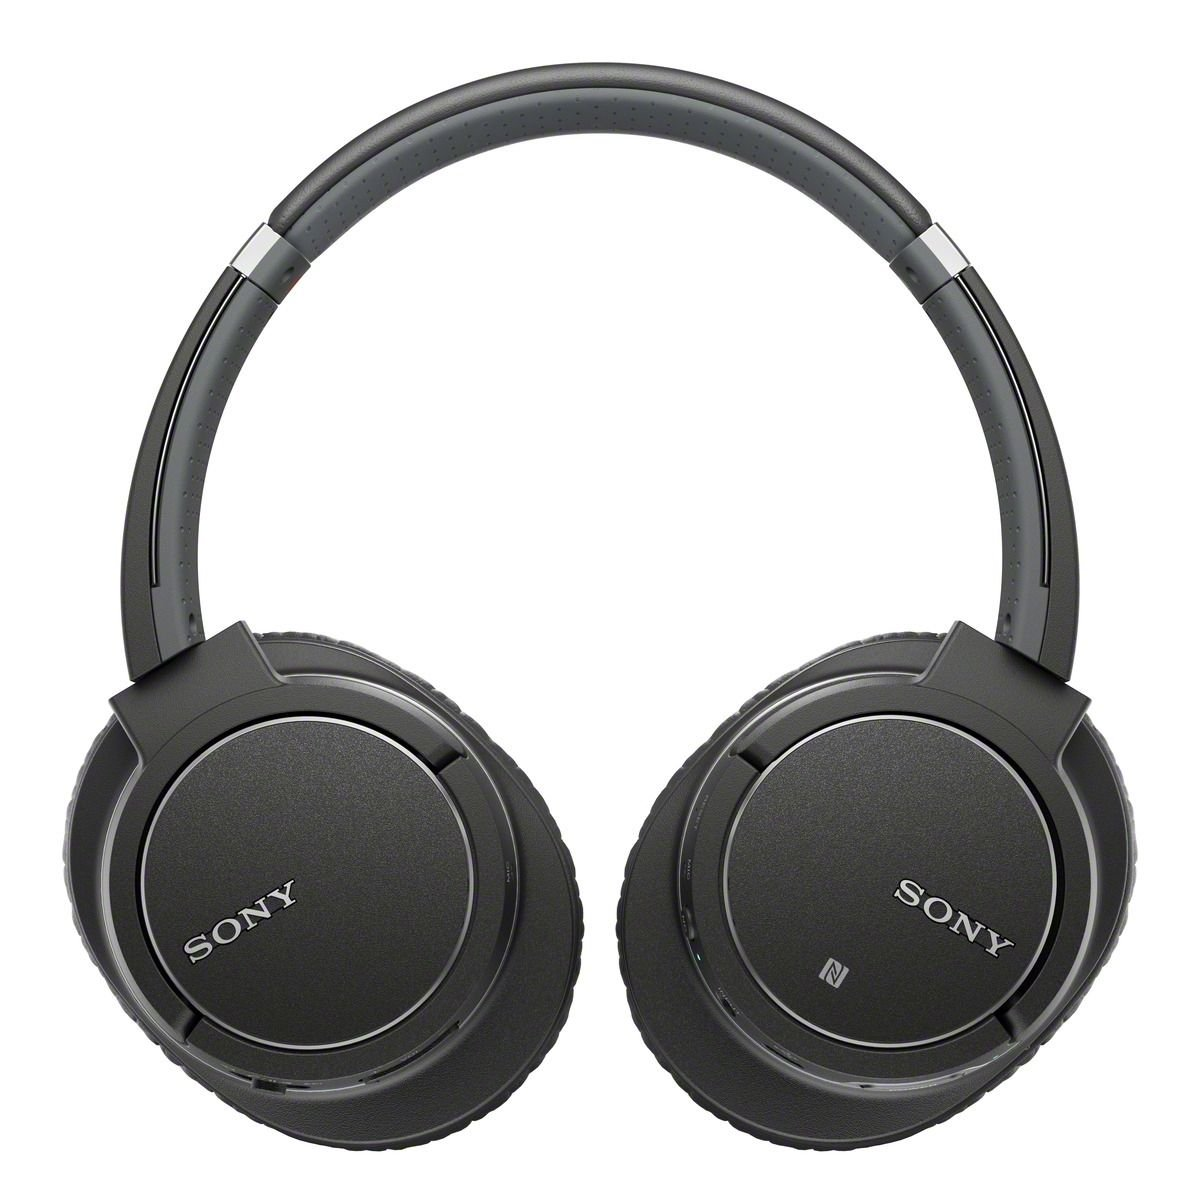 Sony MDR-ZX780DC Bluetooth and Noise Canceling Wireless Headphones /Headset With Case - MDRZX780DC (Black)